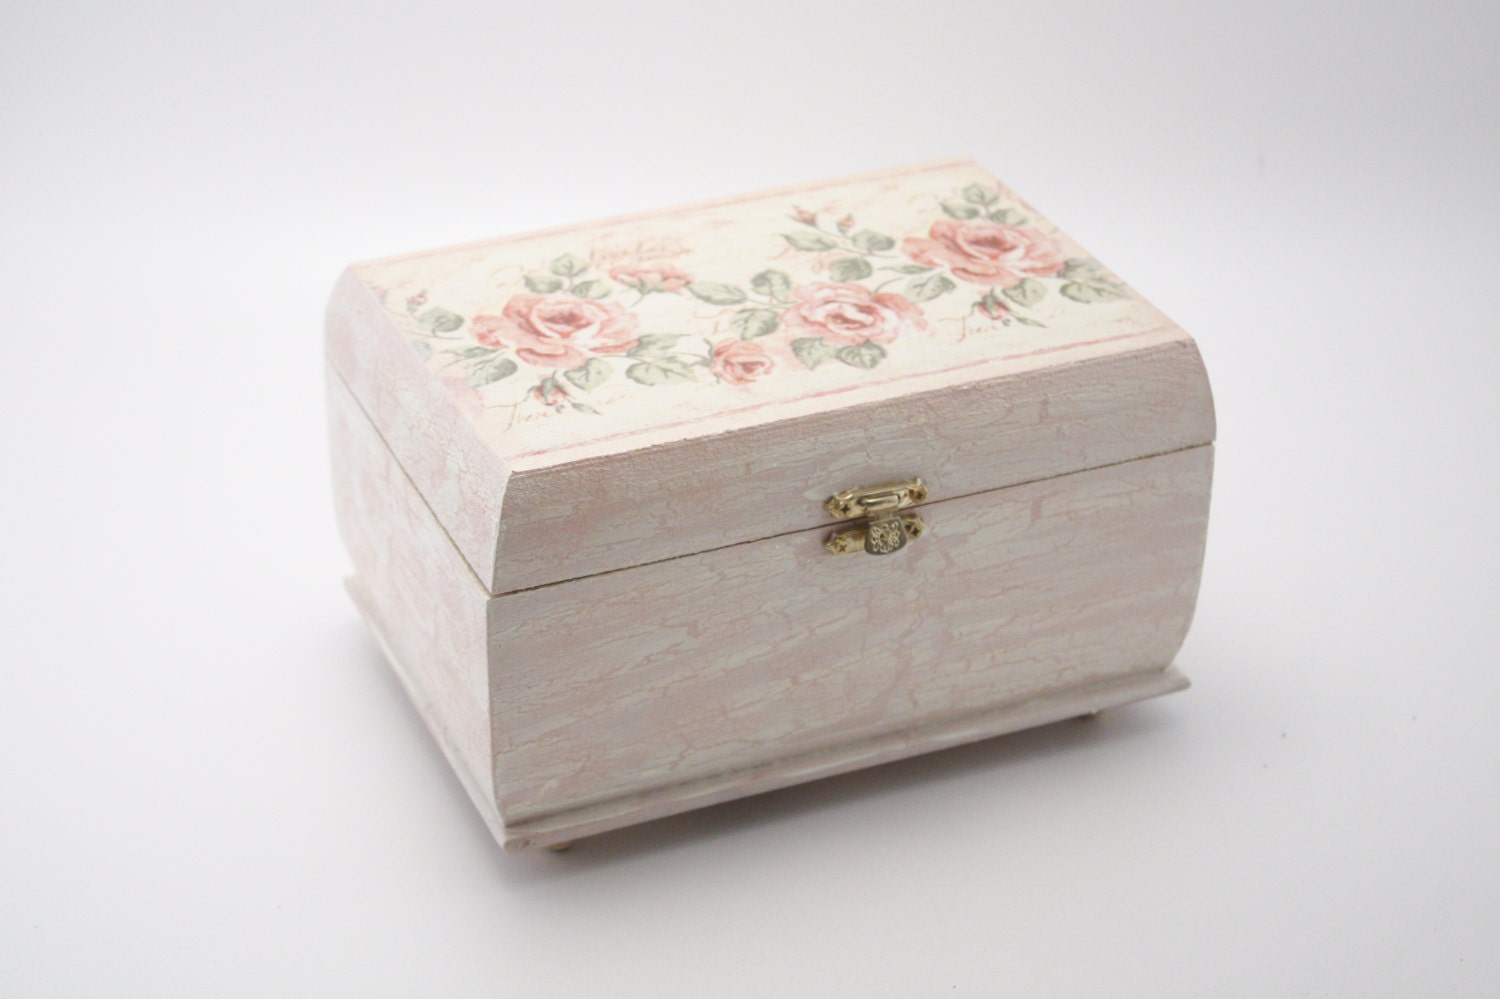 wooden jewelry box decoupage box shabby chic box by pastimeart. Black Bedroom Furniture Sets. Home Design Ideas